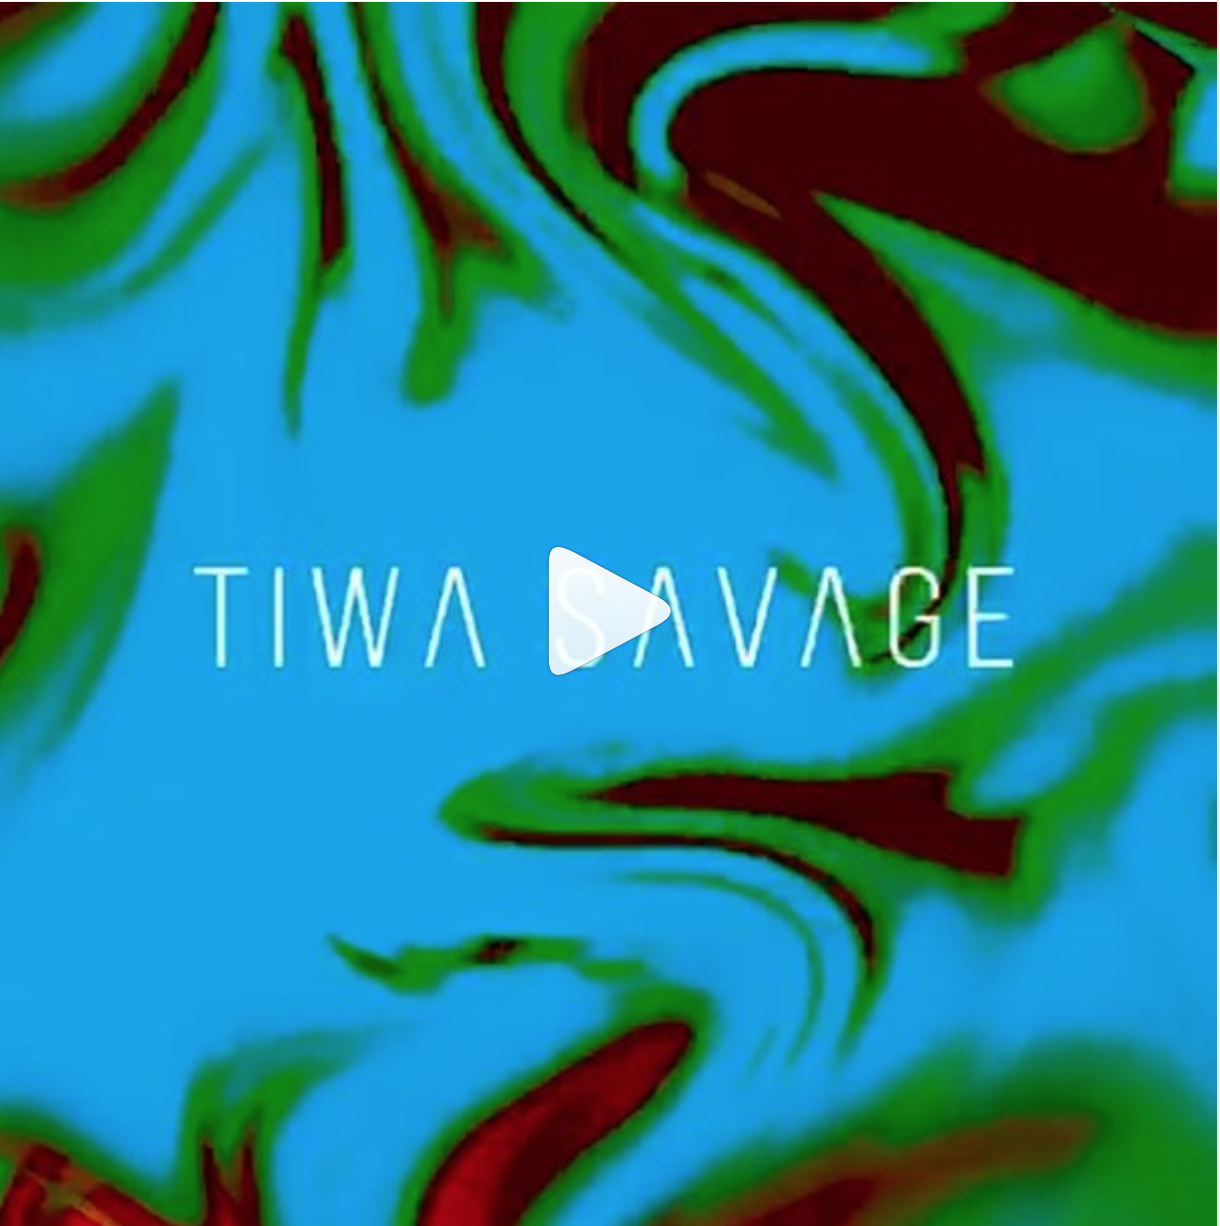 Music: Tiwa Savage – Fvck You (Savage Response)